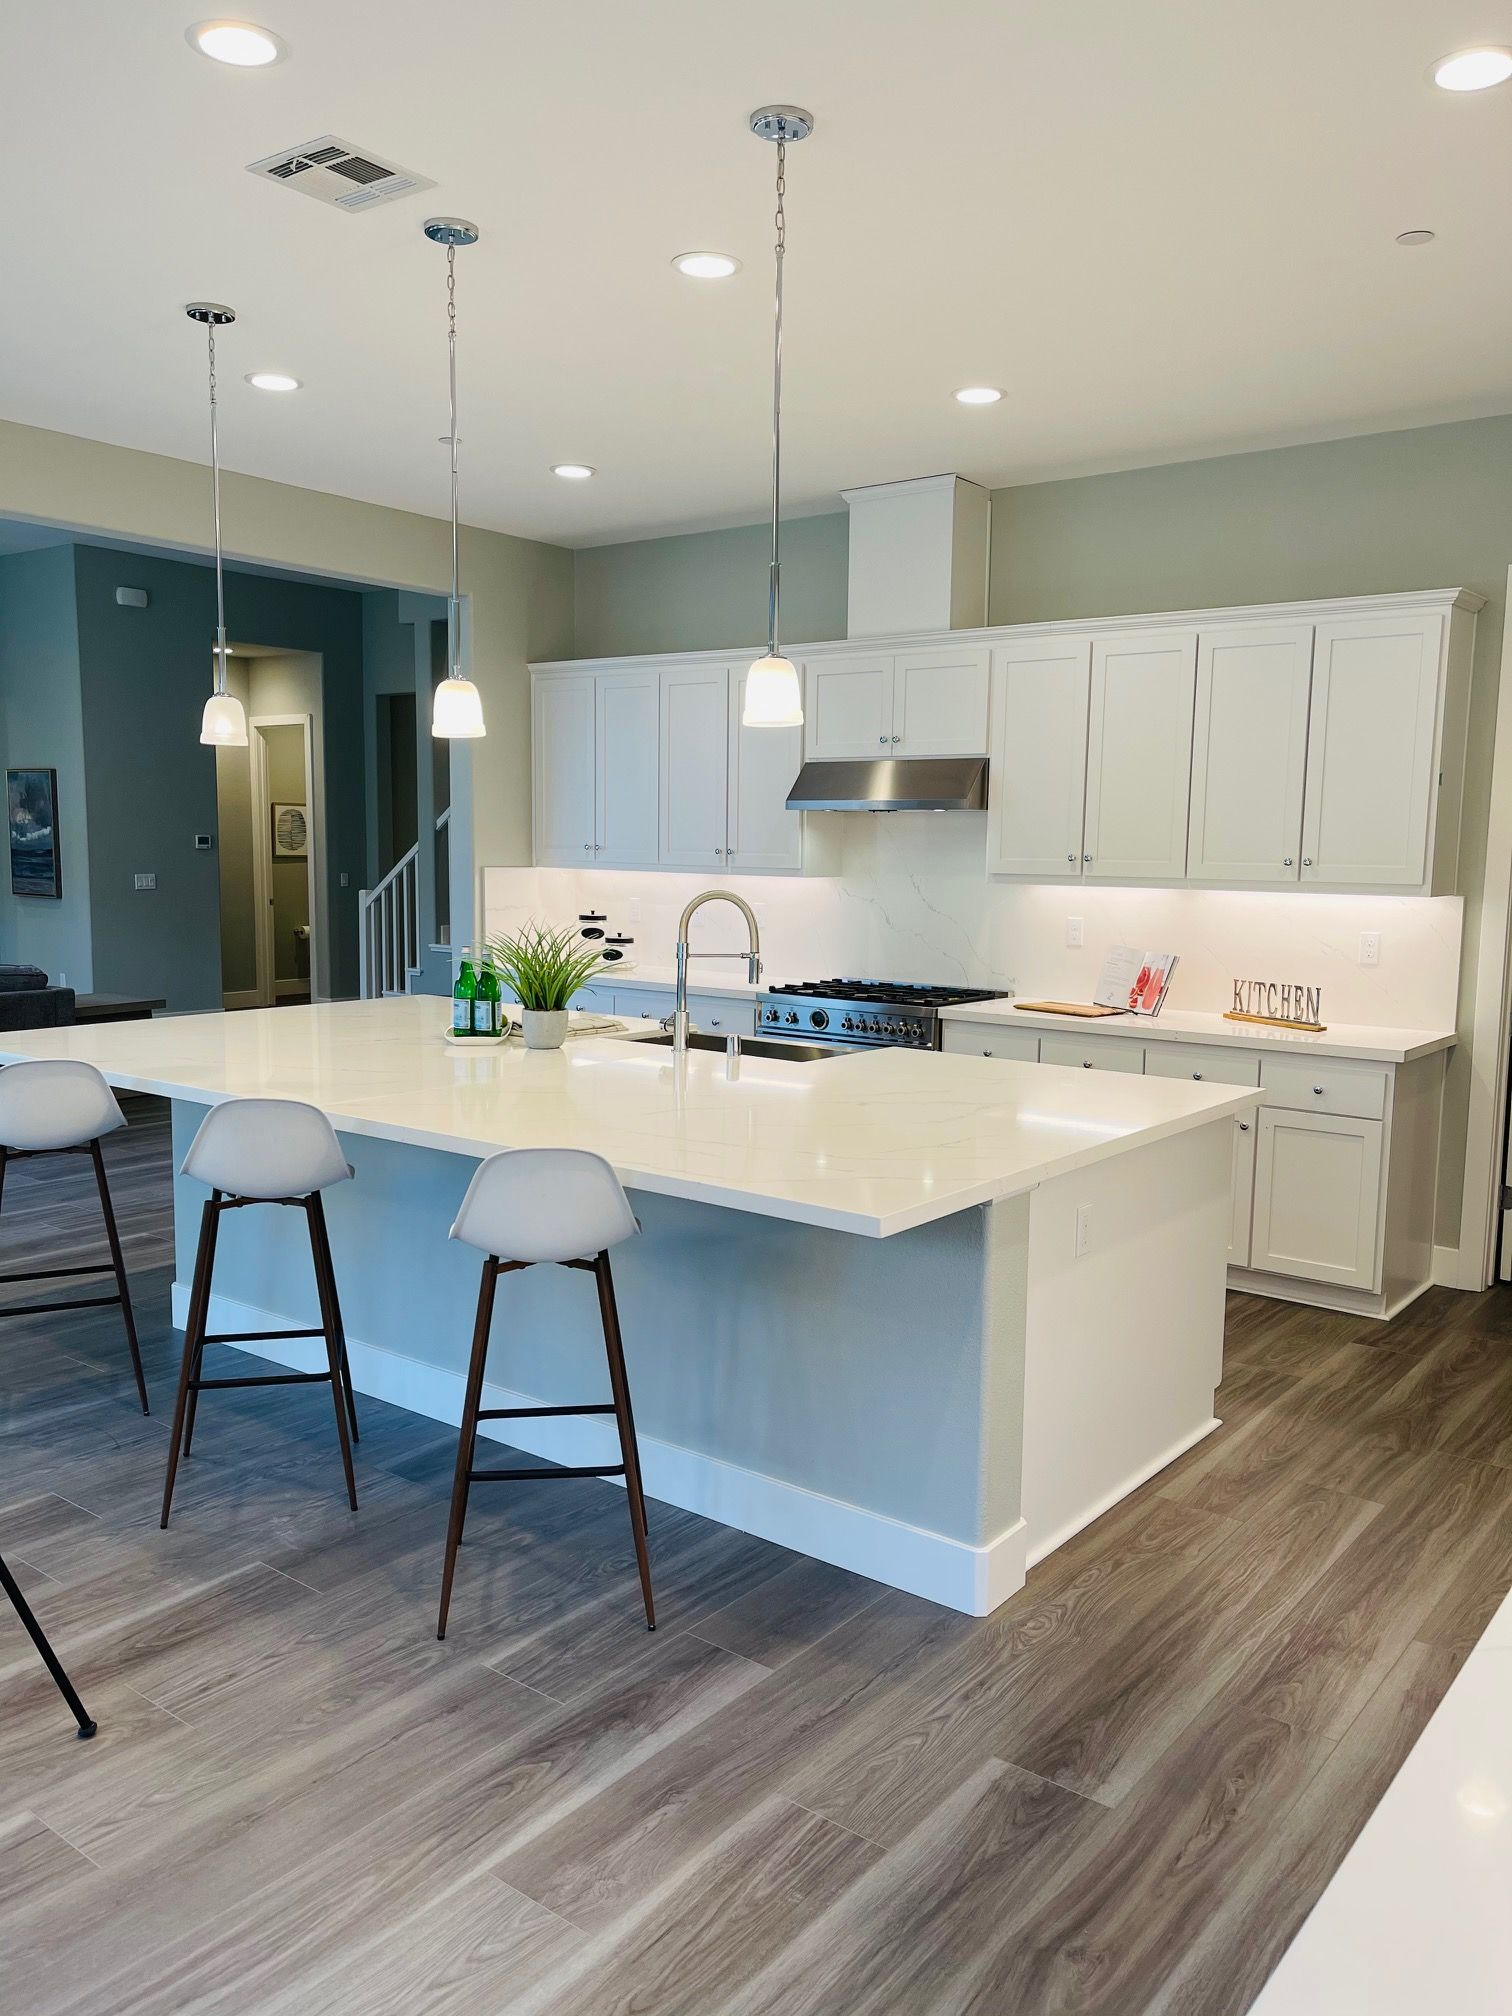 Kitchen featured in the Lot 14 By Lafferty Communities in Santa Rosa, CA